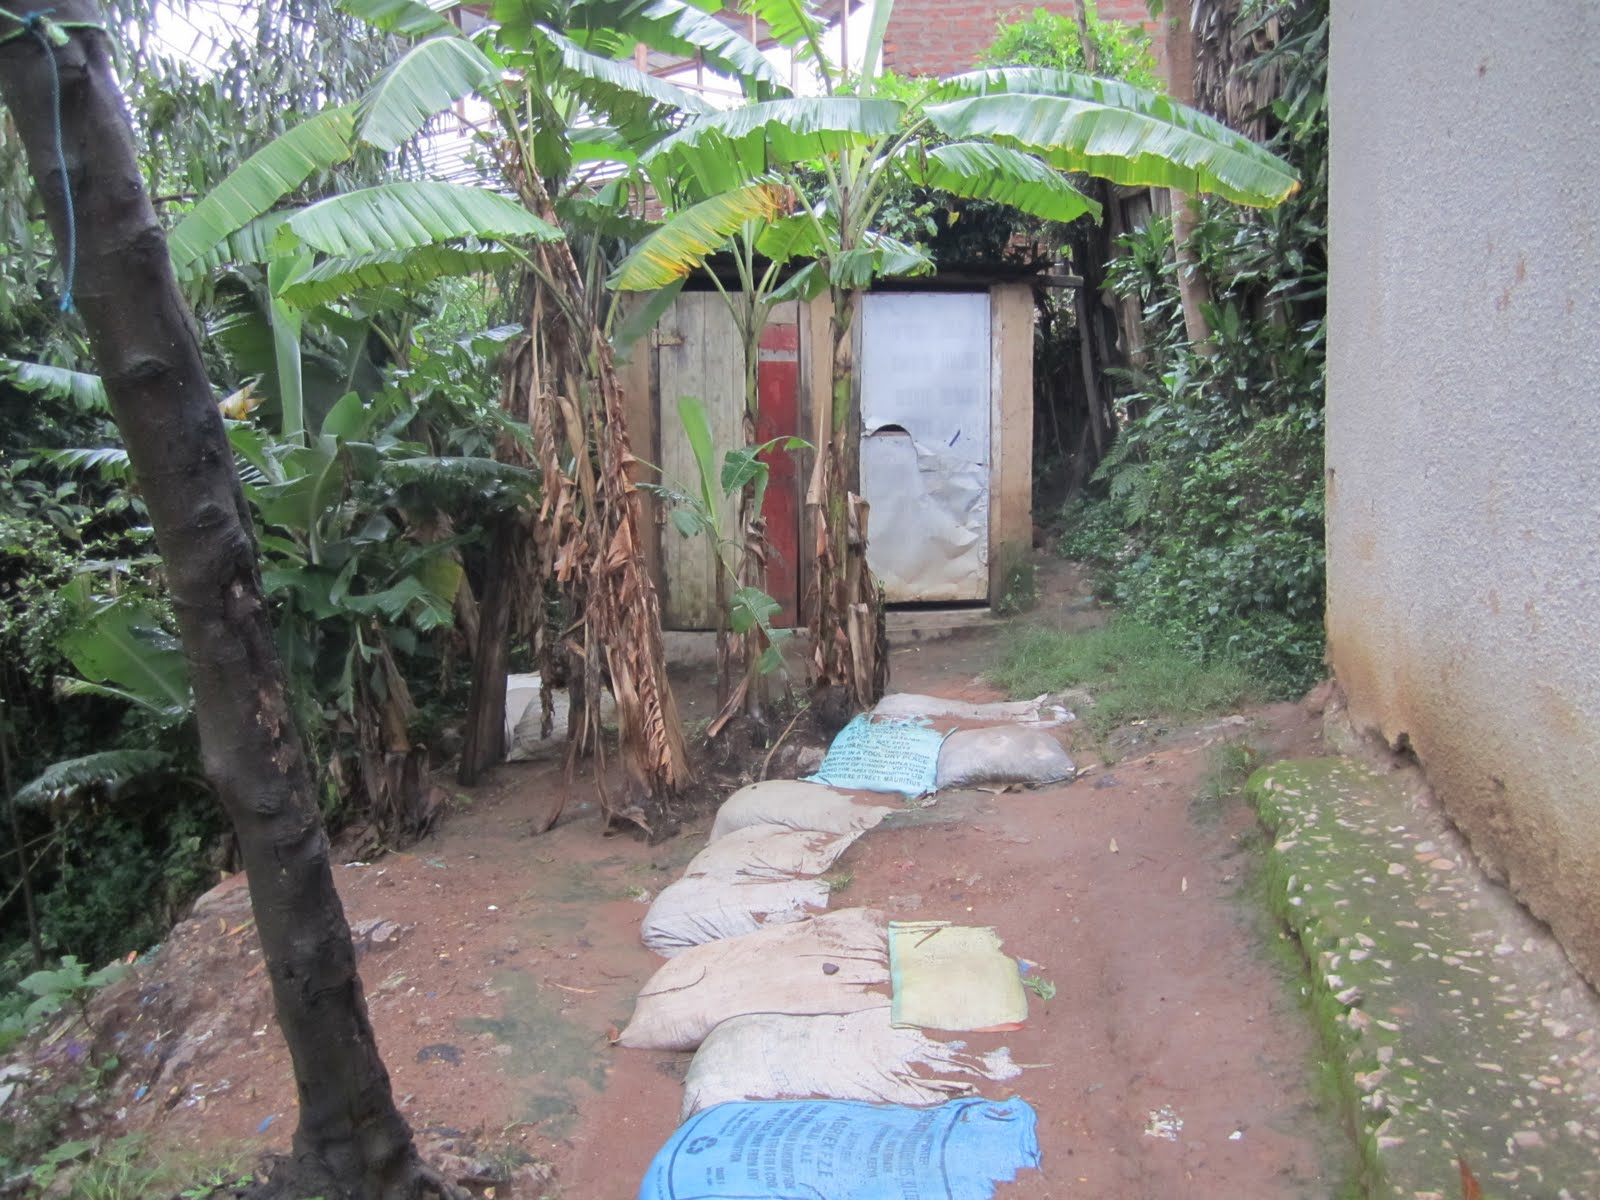 Heres a view of the pit latrine that all the houses in my compound shared a compound is just a name for a common piece of land with several buildings